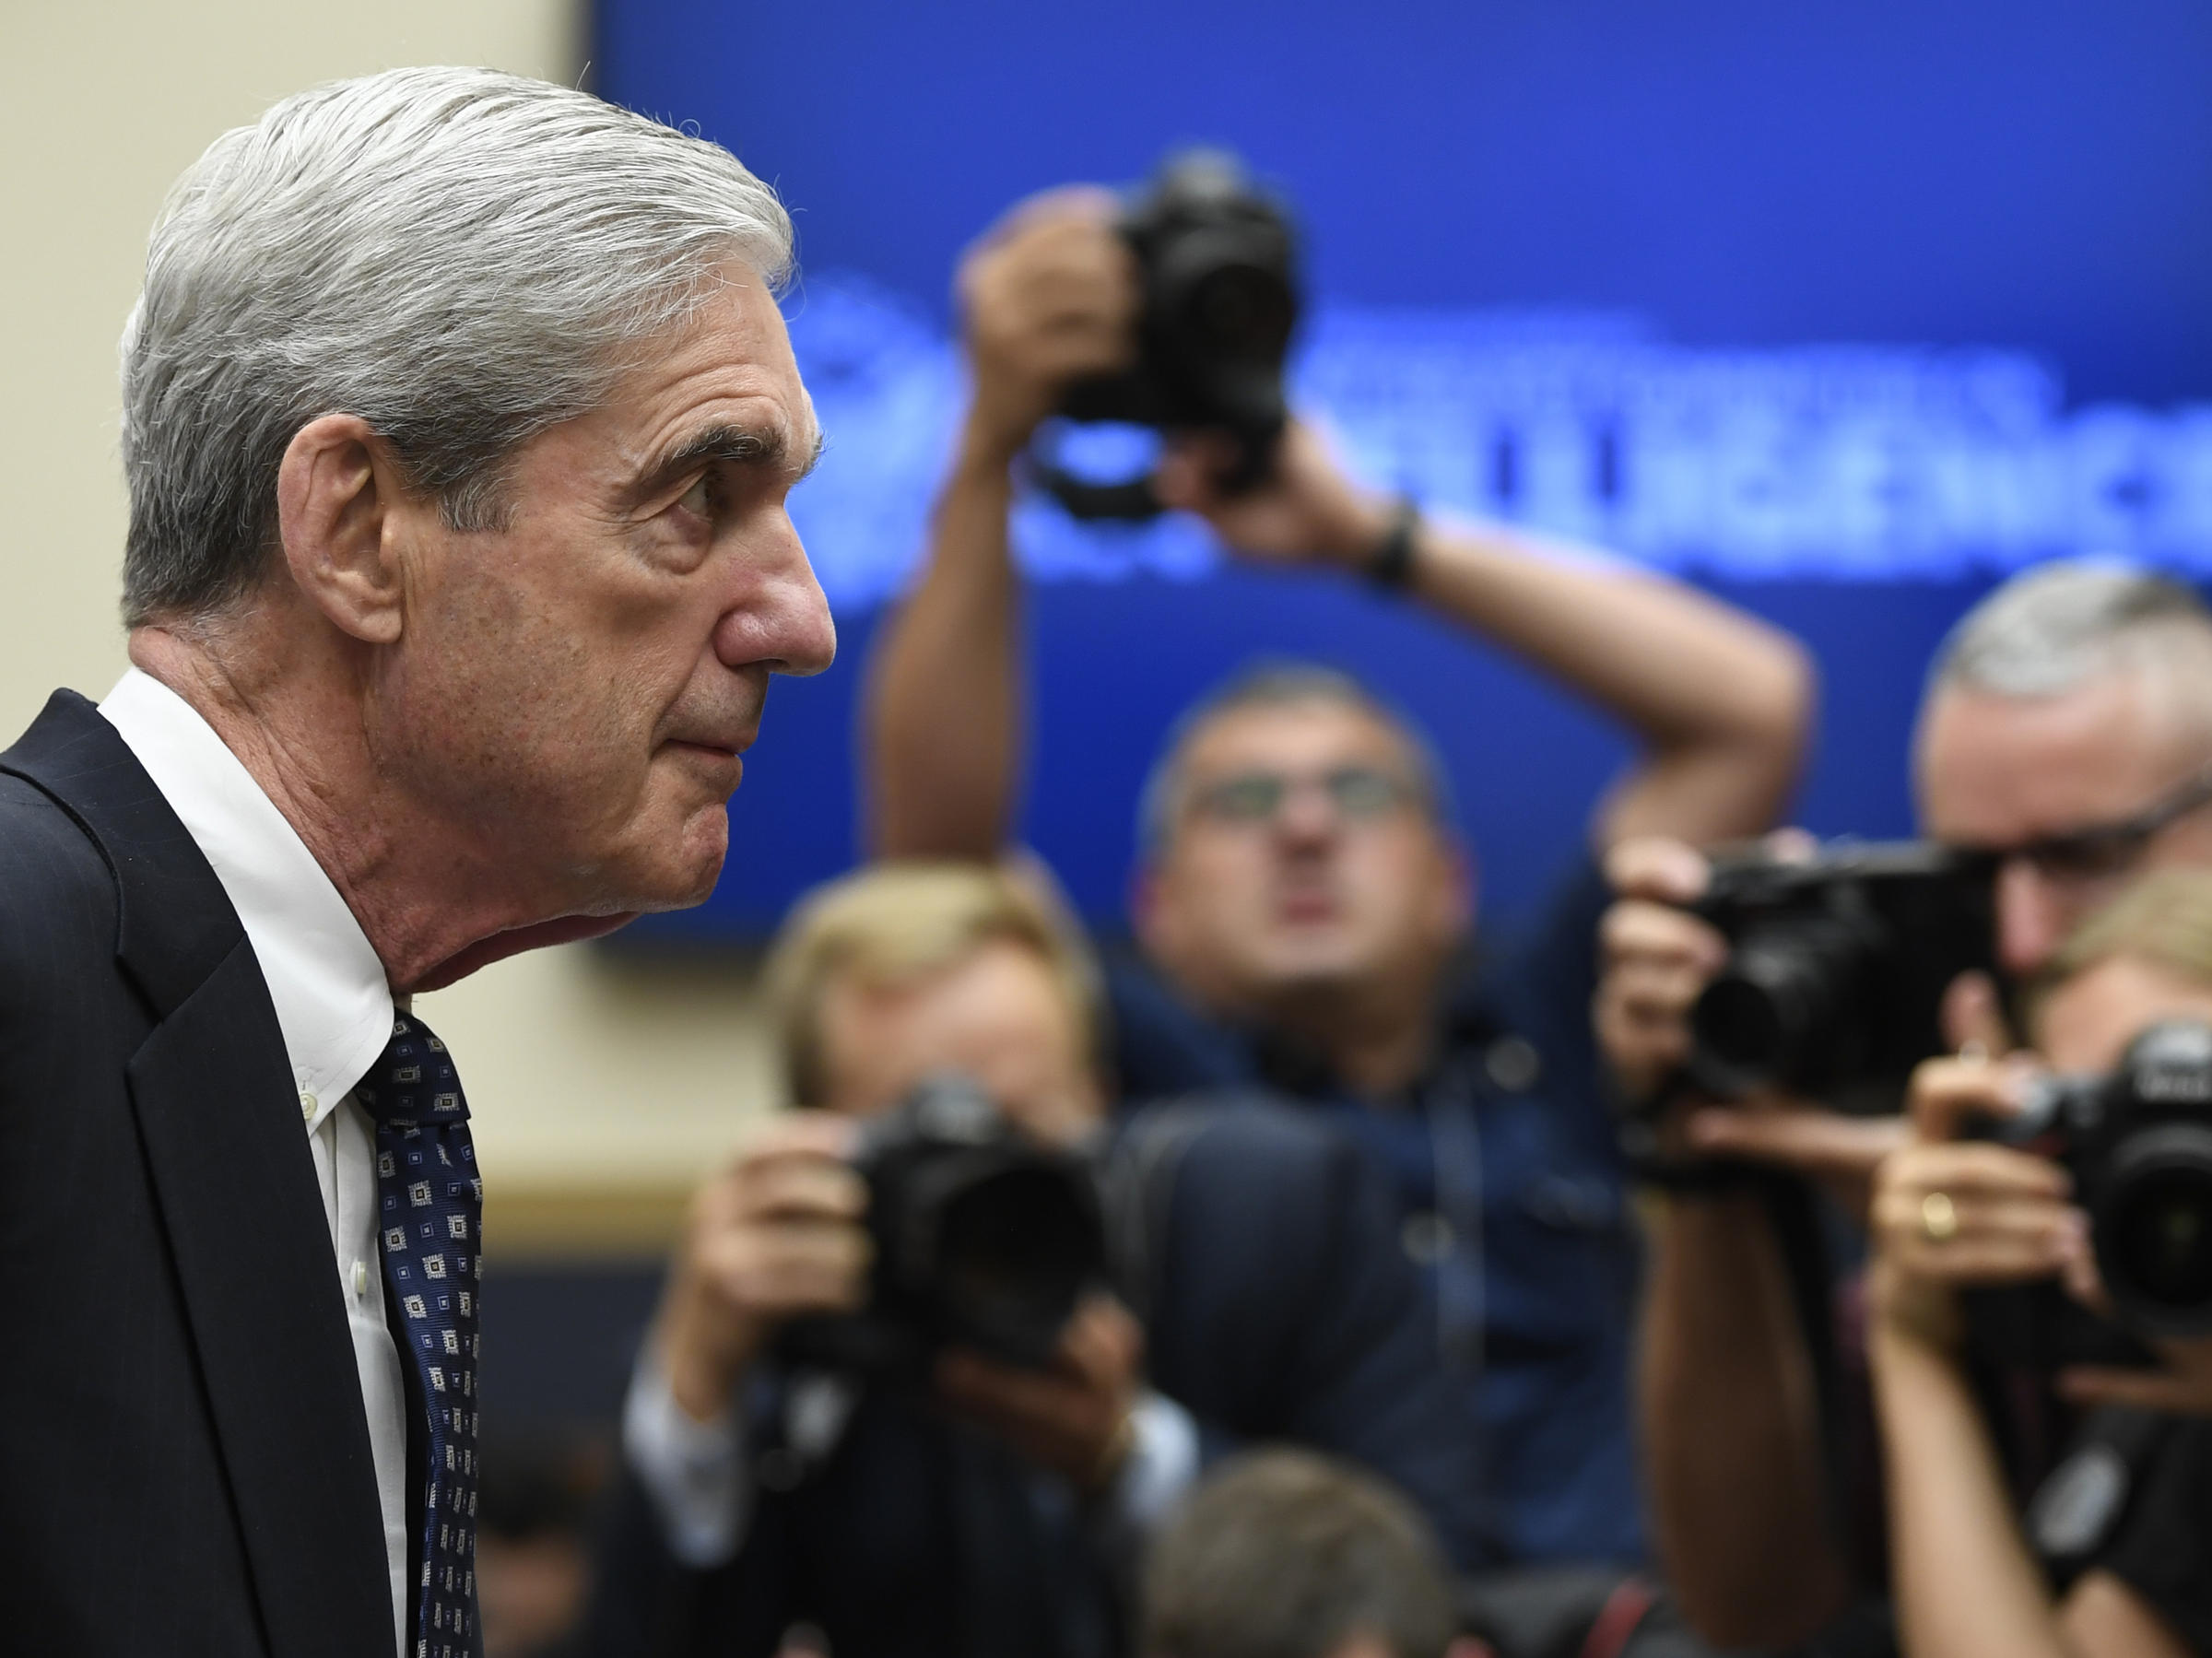 Judges rule Democrats should get Mueller evidence